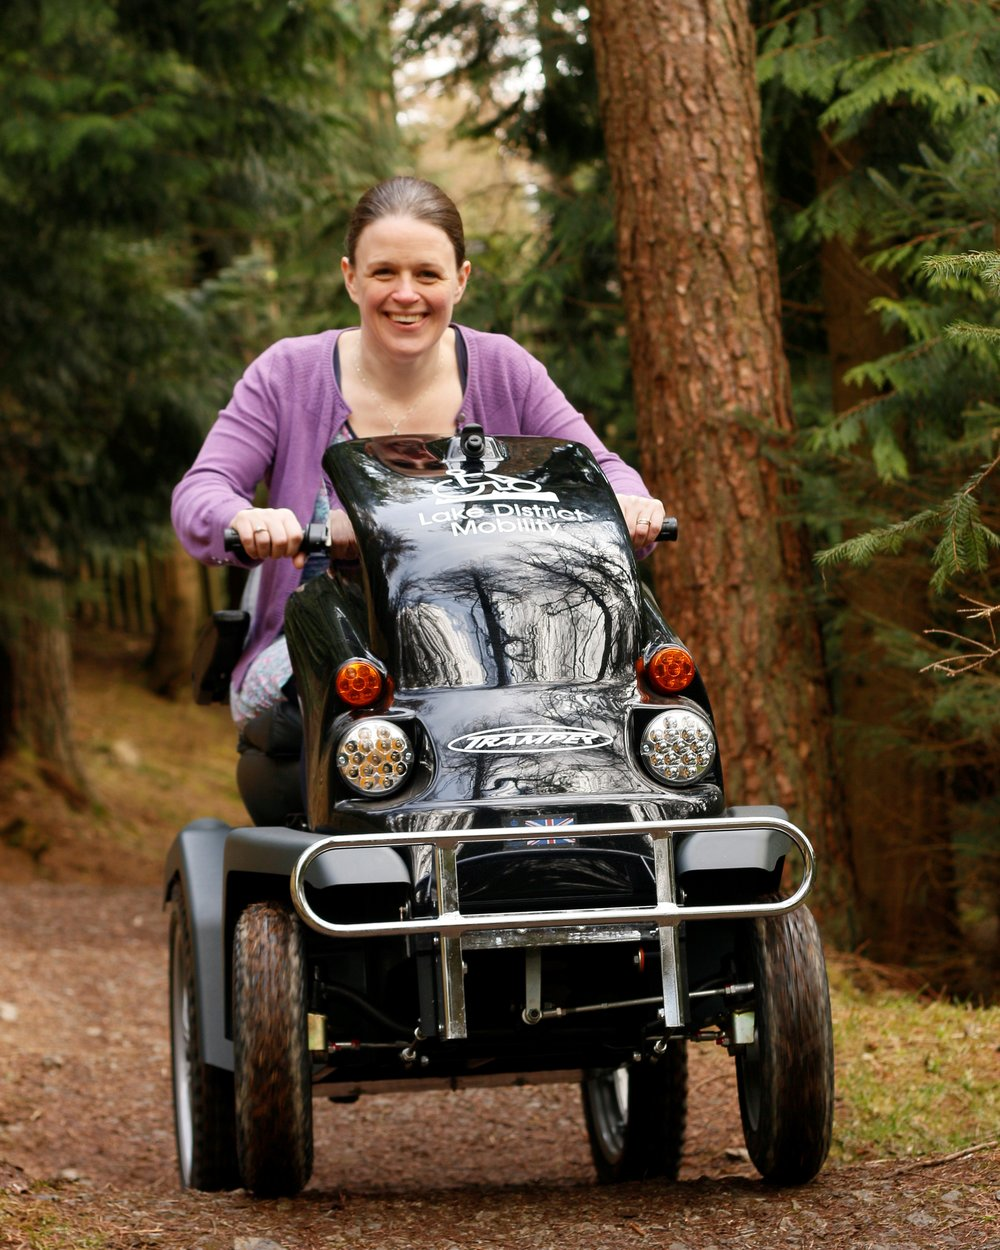 Julia Walker manager of Lake District Mobility, trialling Whinlatter's new Tramper